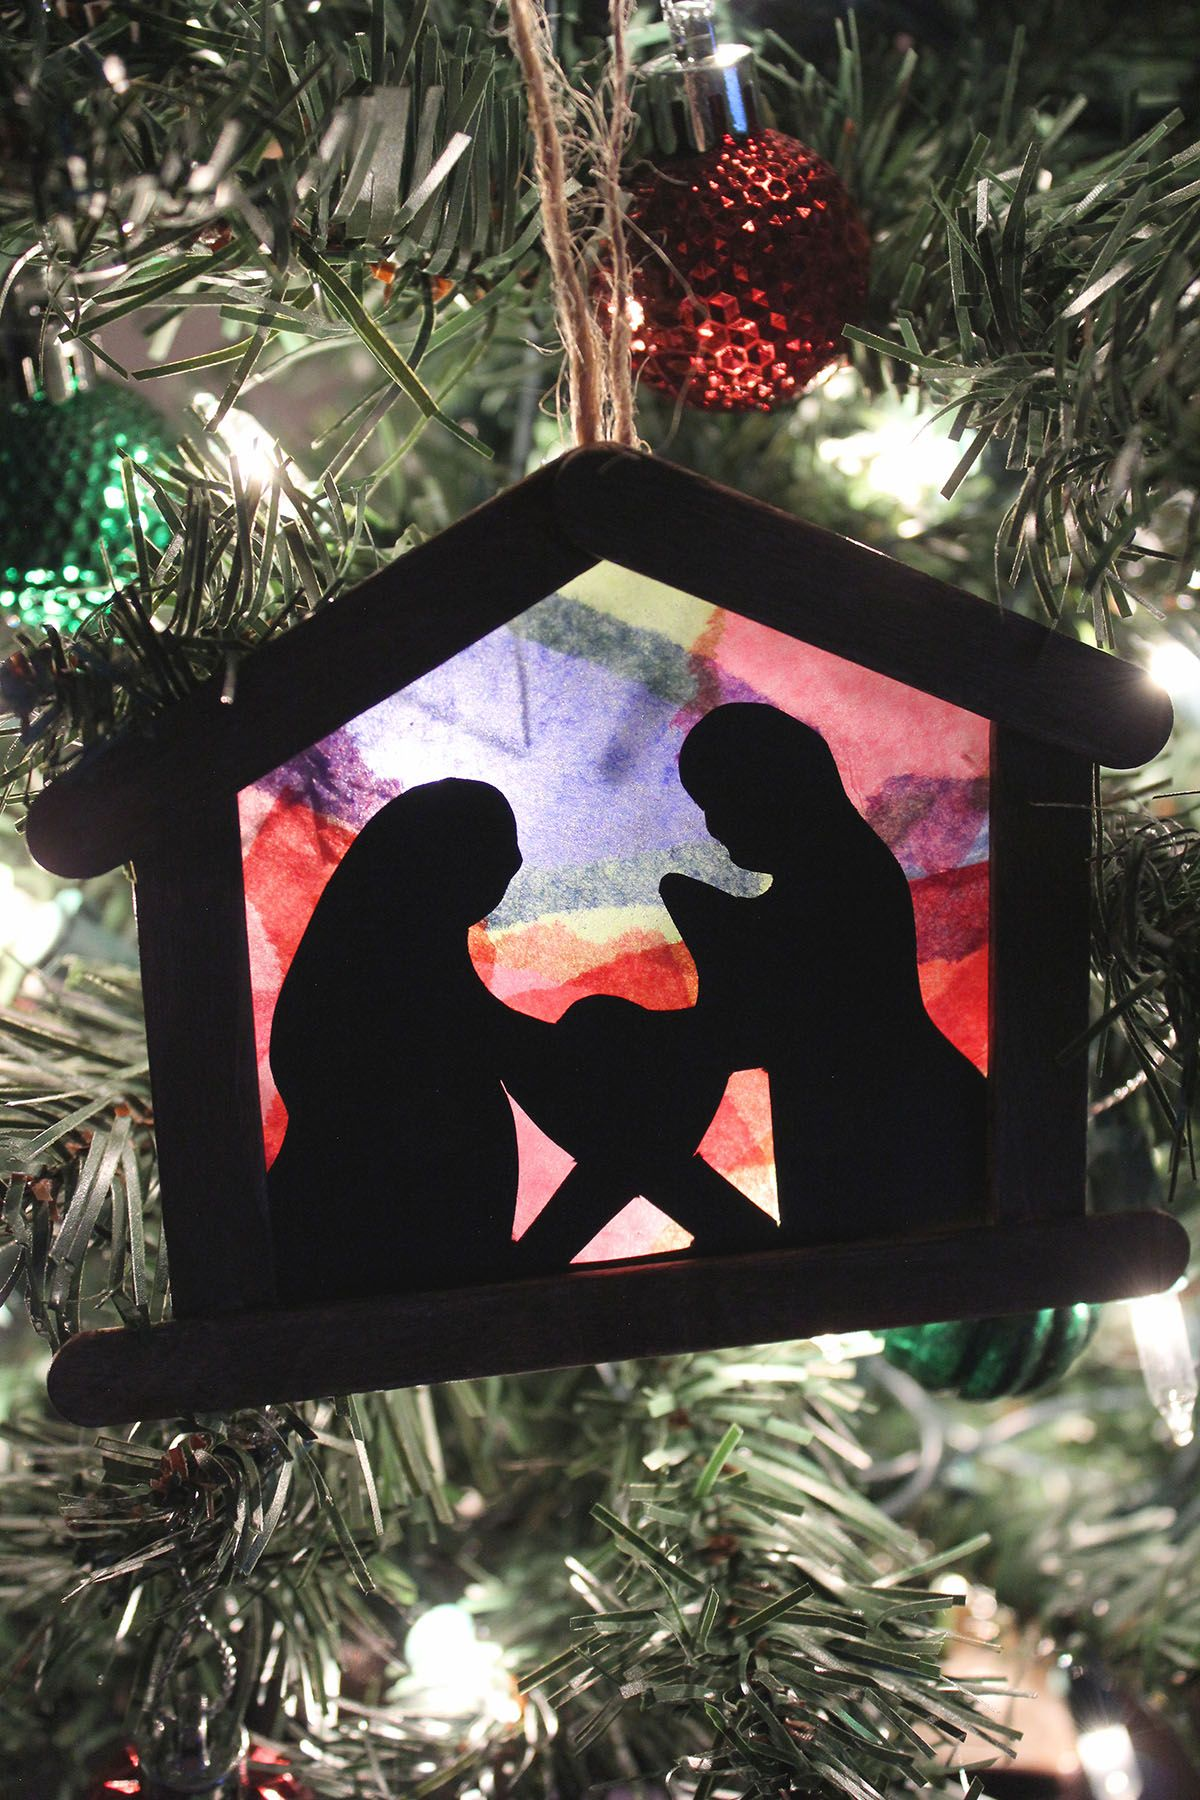 Stained Glass Nativity Ornament Craft For Kids I Heart Arts N Crafts Diy Christmas Tree Ornaments Nativity Ornaments Christmas Mosaics